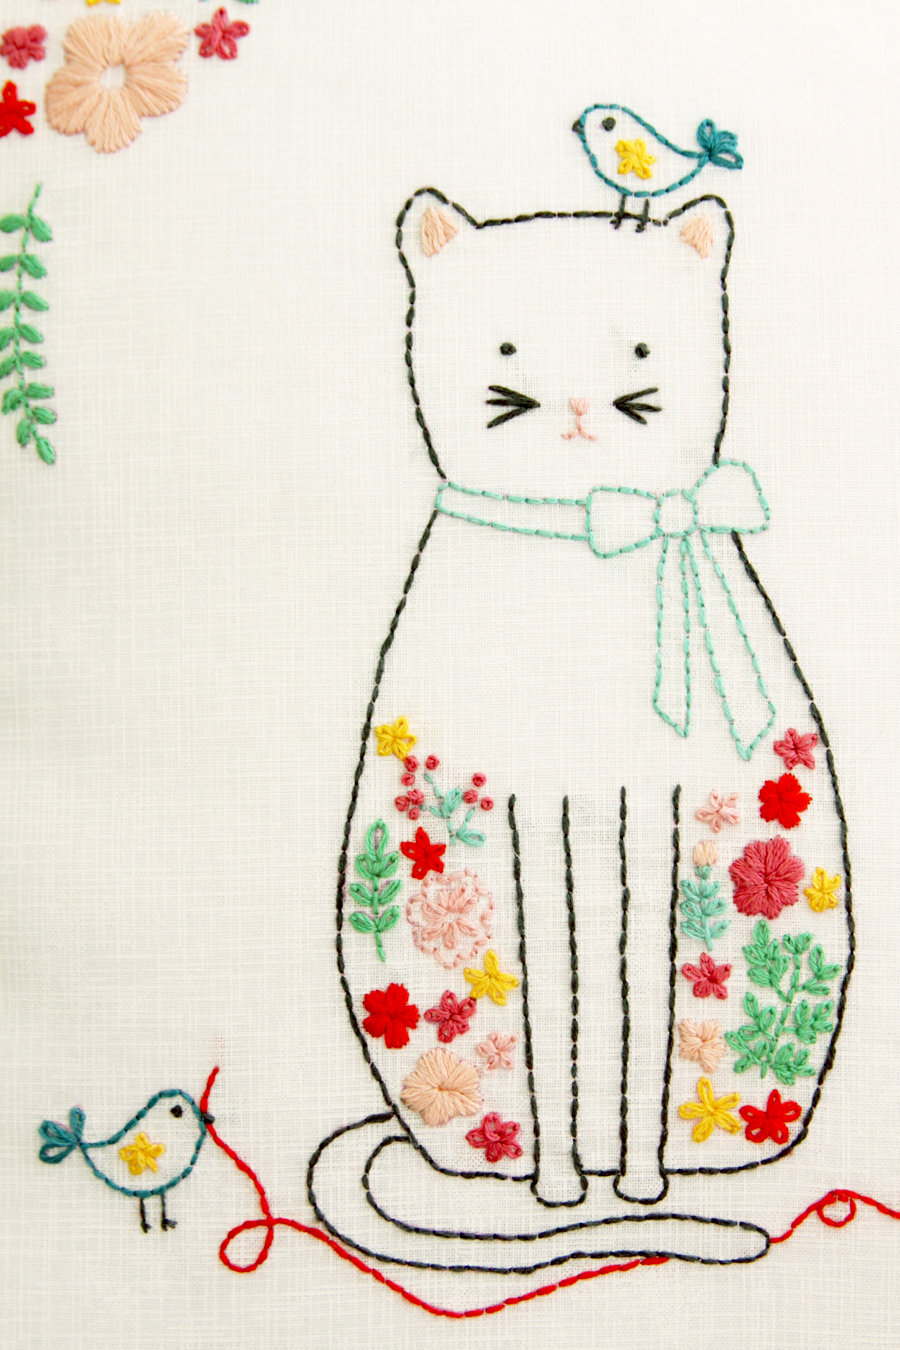 Stitching Friends Embroidered Pillow Pattern